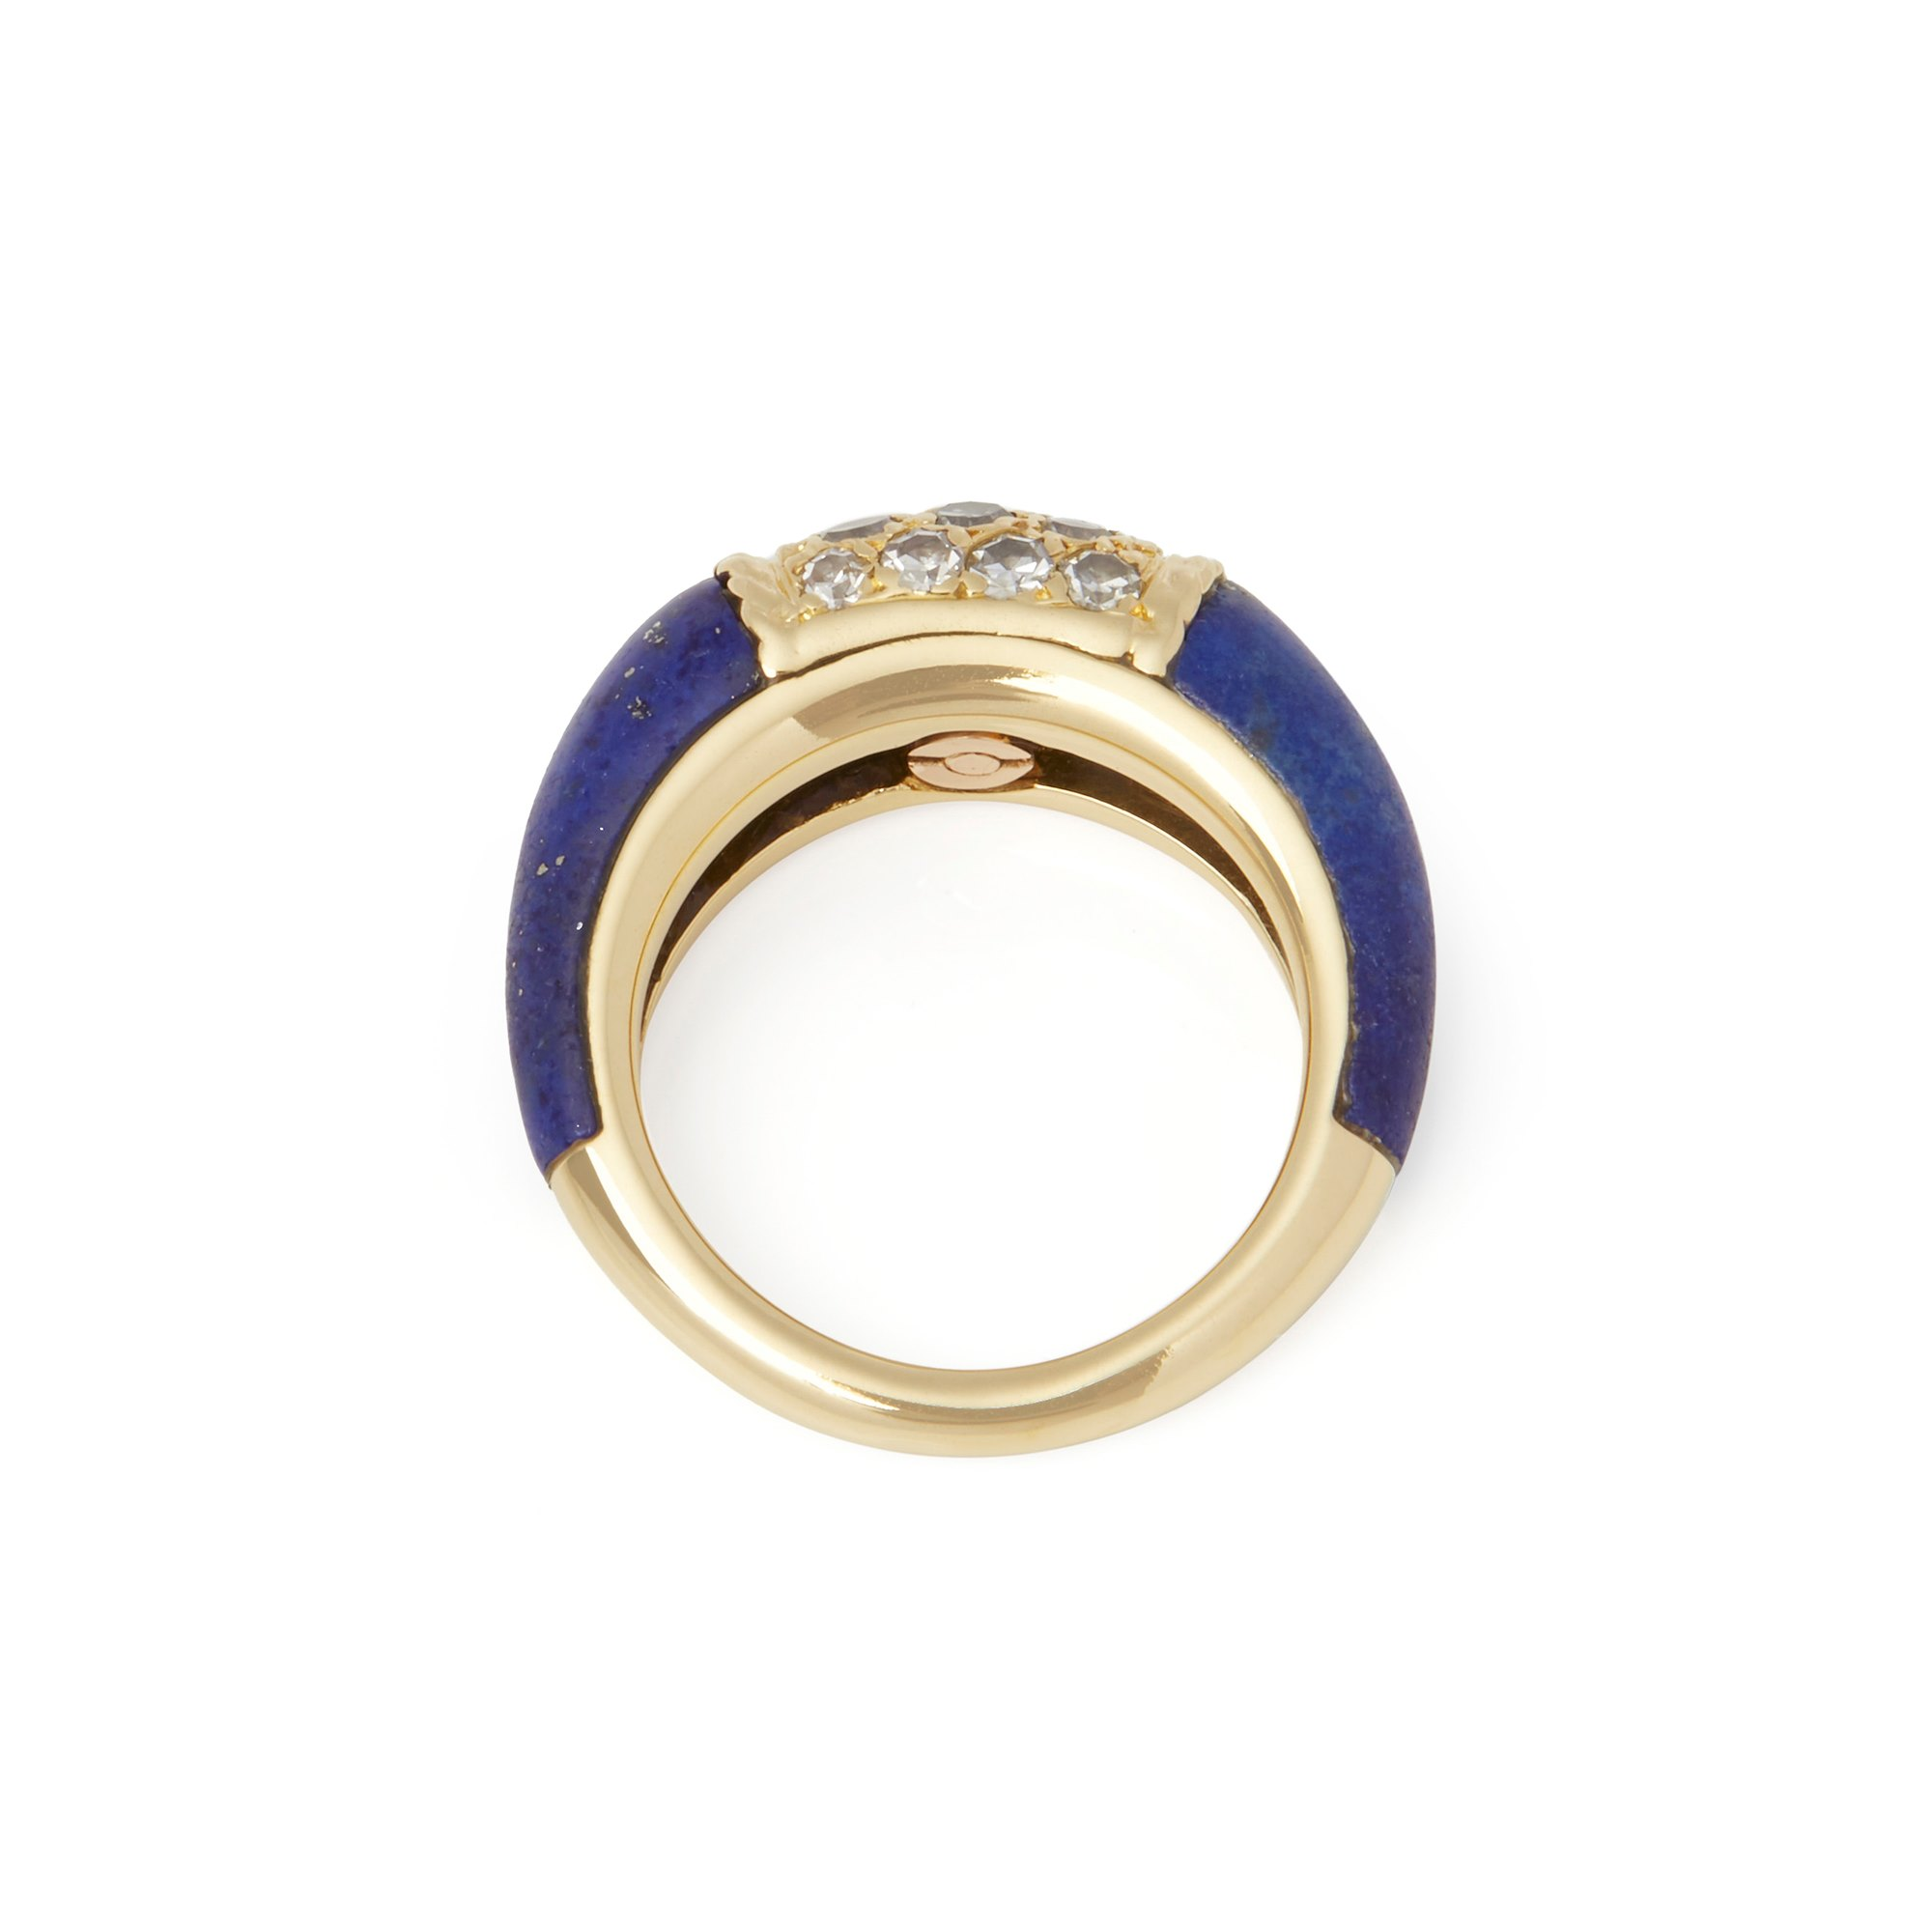 Van Cleef & Arpels 18k Yellow Gold Lapis and Diamond Philippine Ring